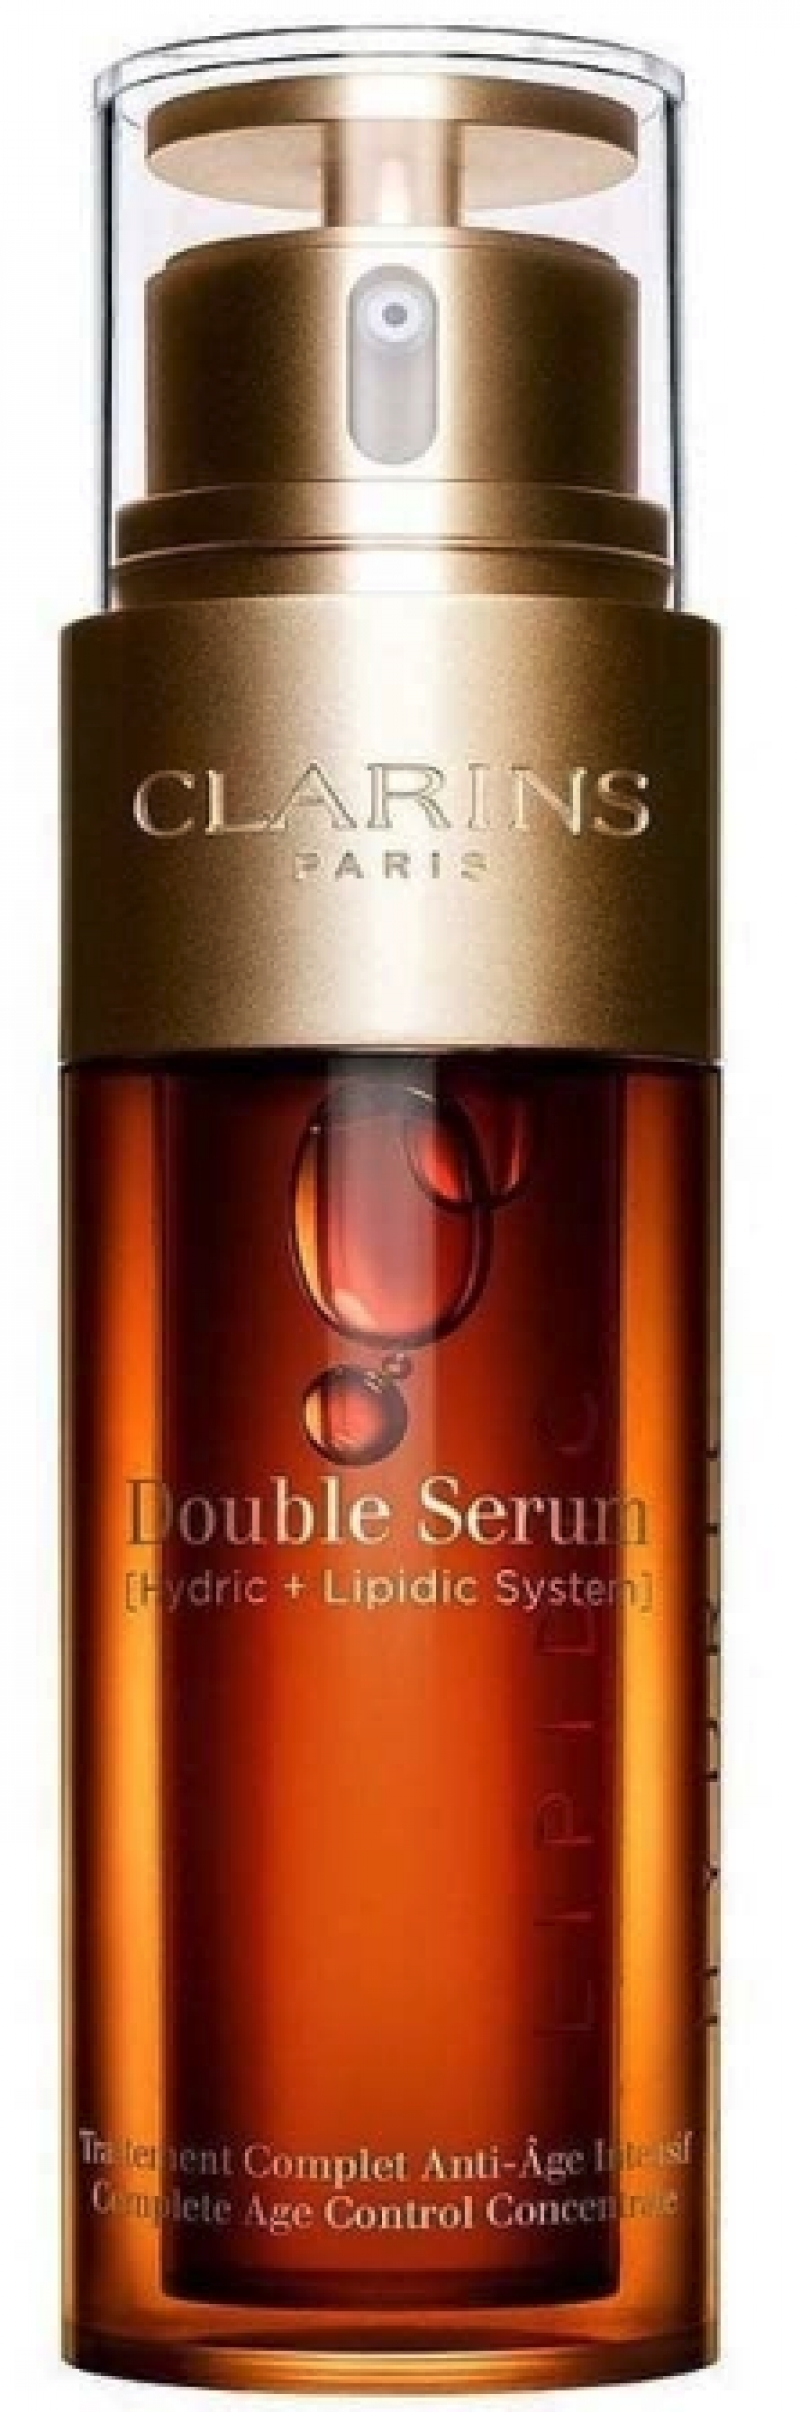 ihocon: Clarins Double Serum Complete Age Control Concentrate, 1.6 Oz 克蘭詩超級精華-黃金雙激萃